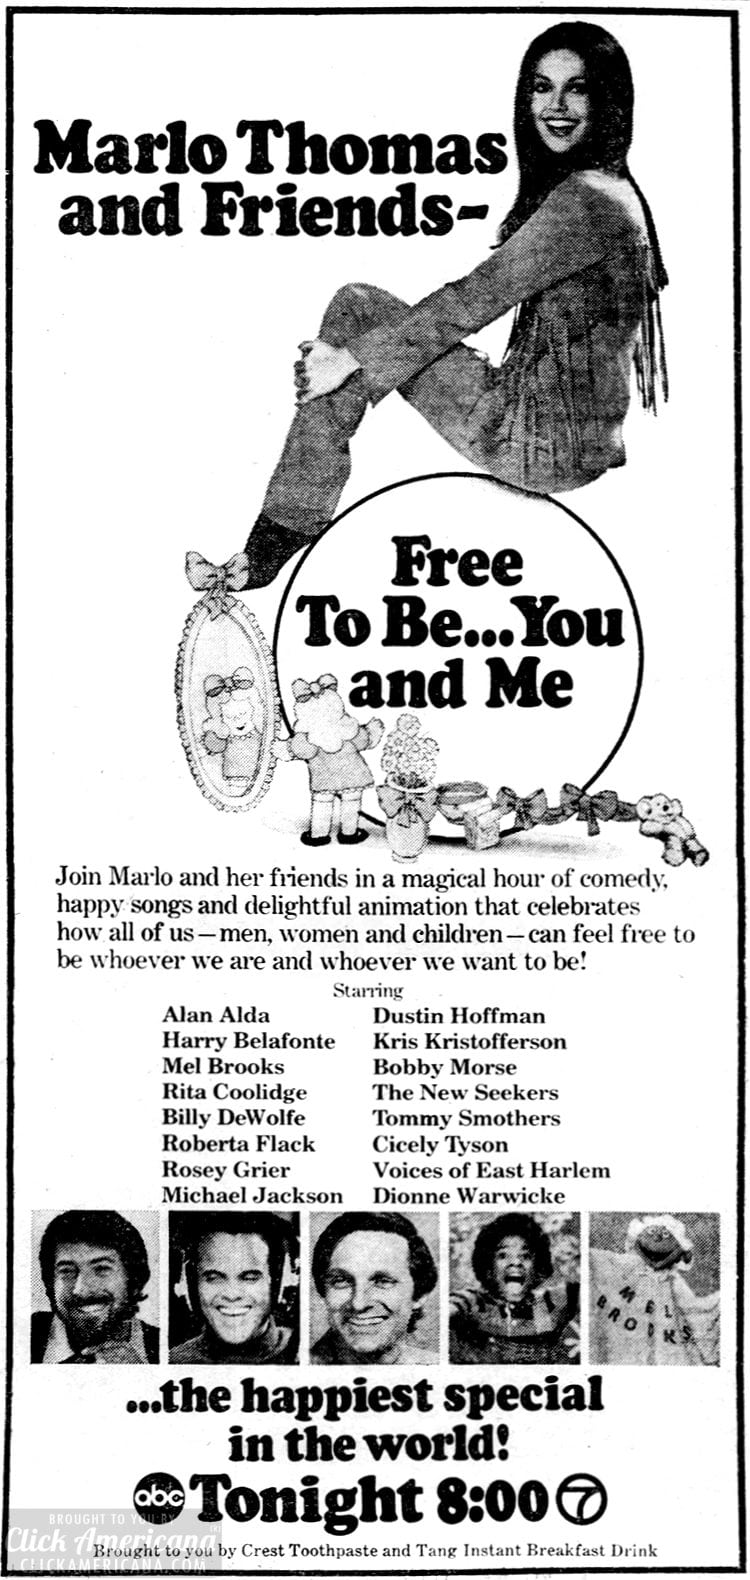 Free to Be You and Me - TV special - March 1974